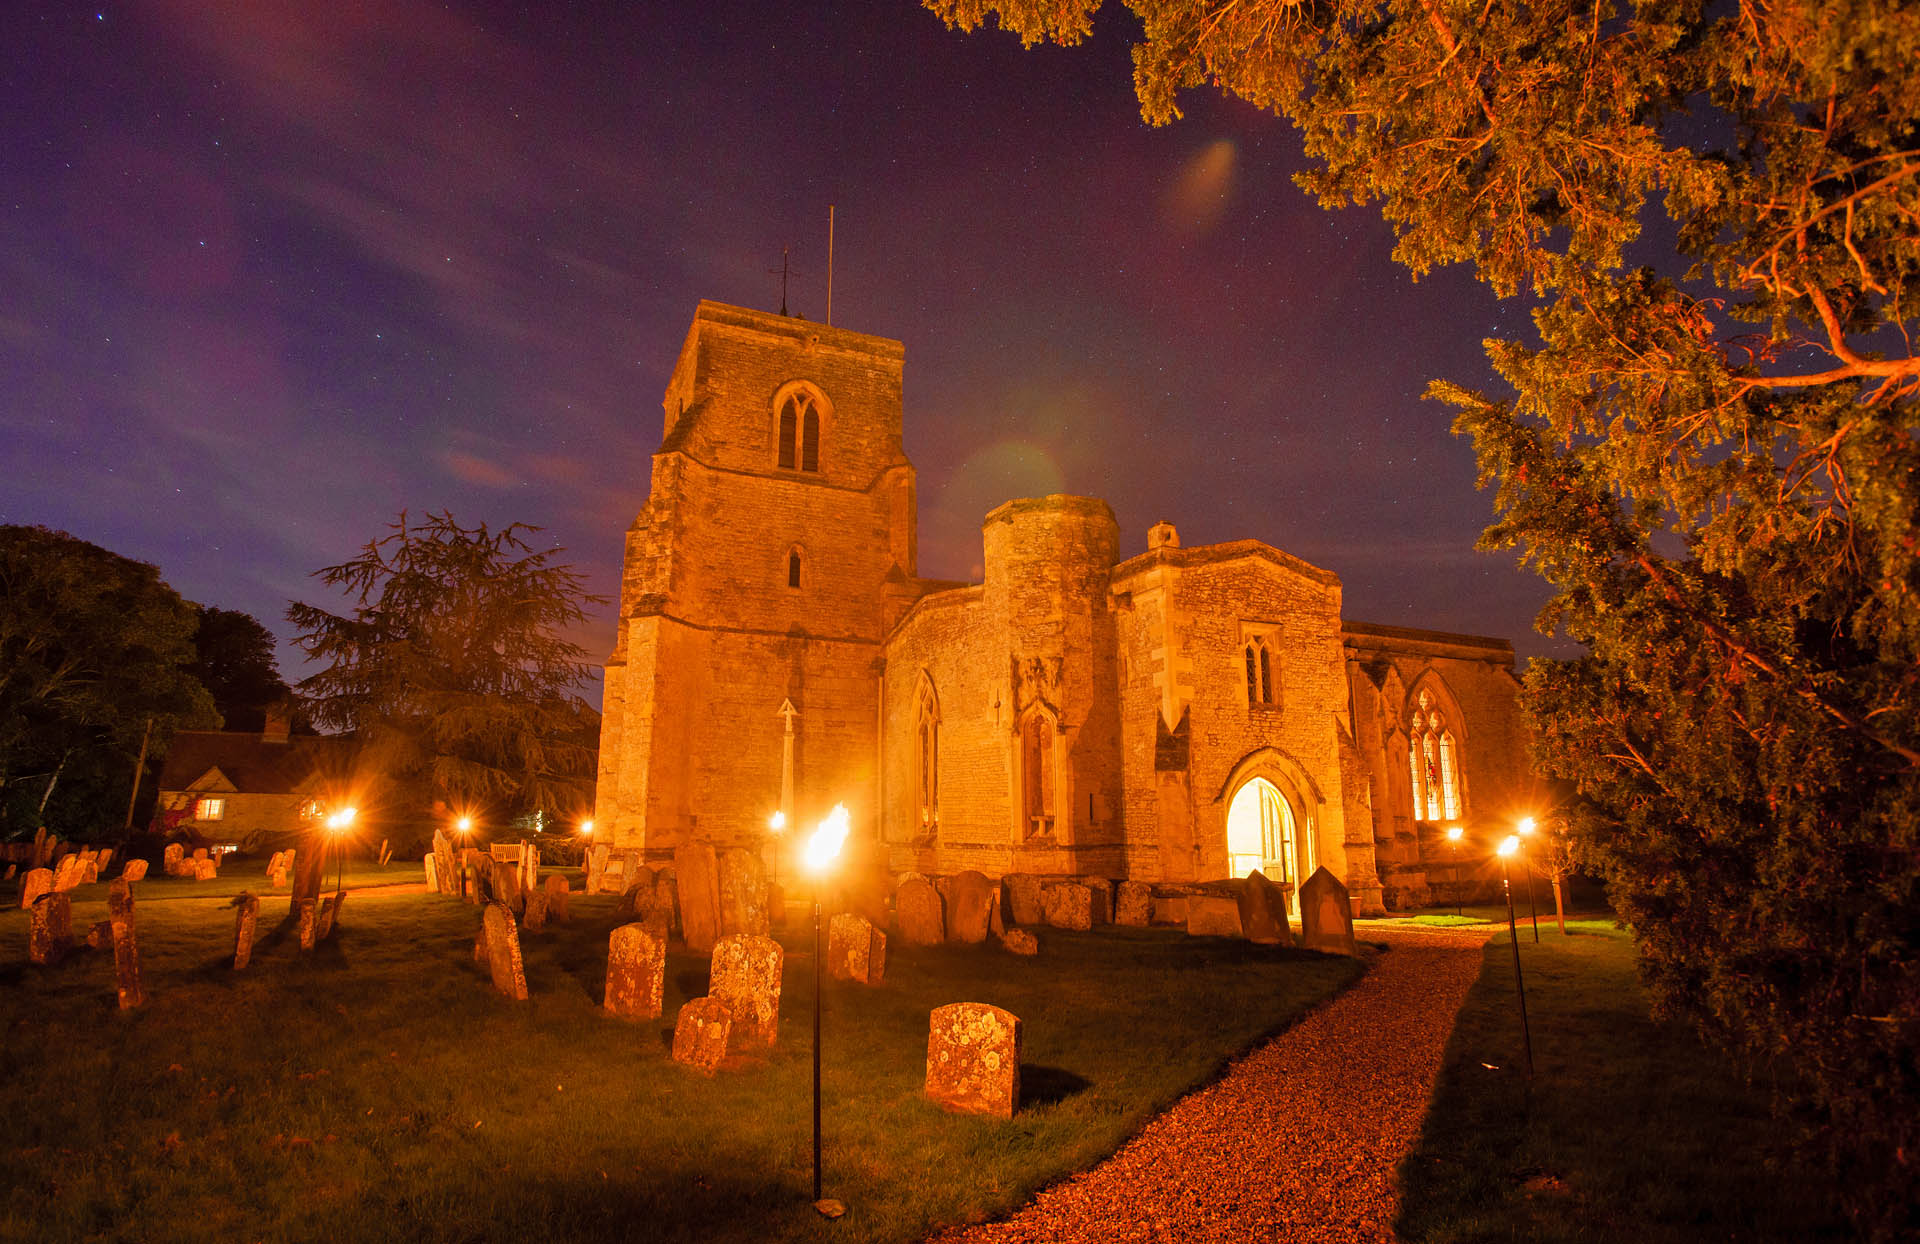 St Mary's Church at Night